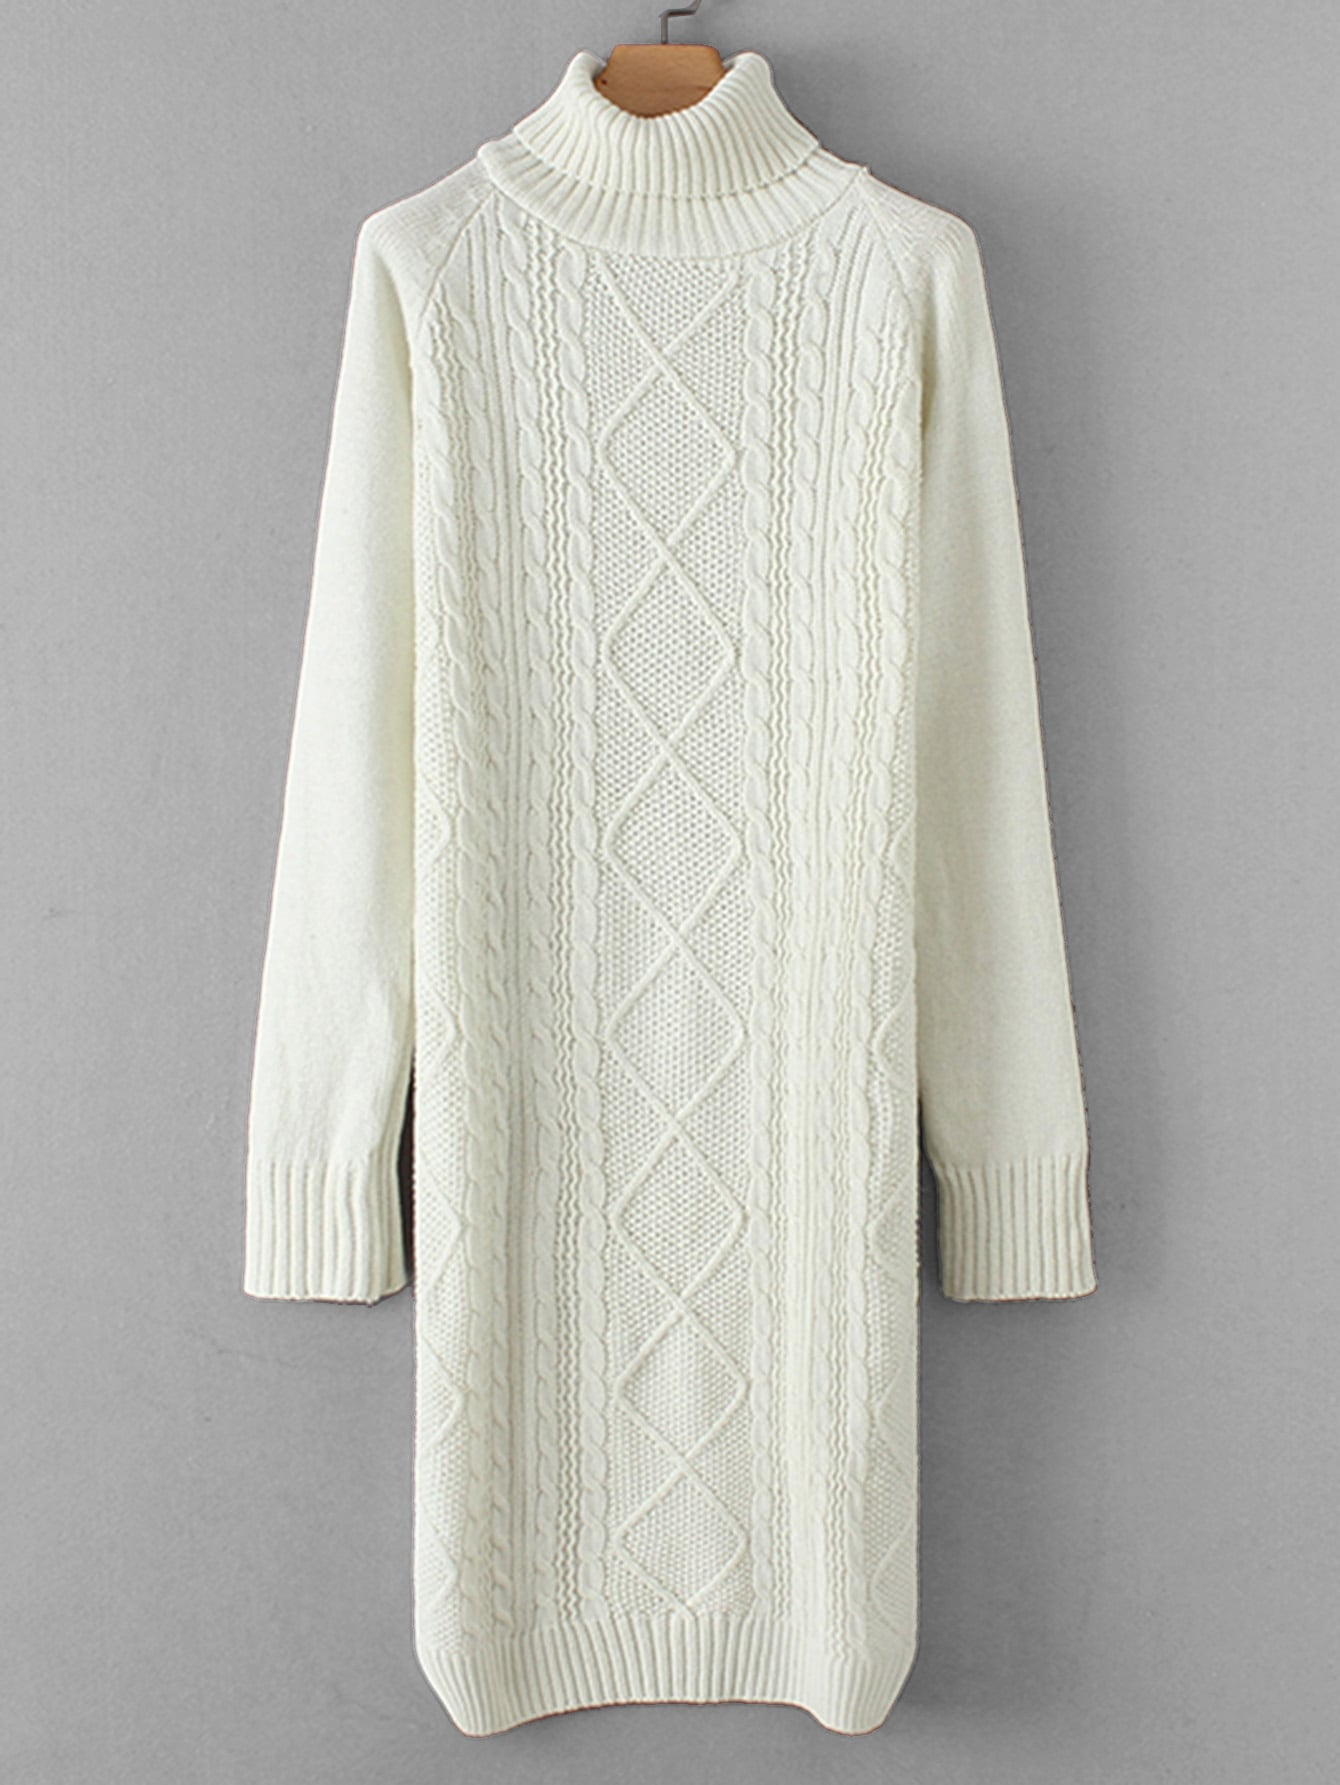 Cable Knit Raglan Sleeve Sweater Dress Cable Knit Raglan Sleeve Sweater Dress